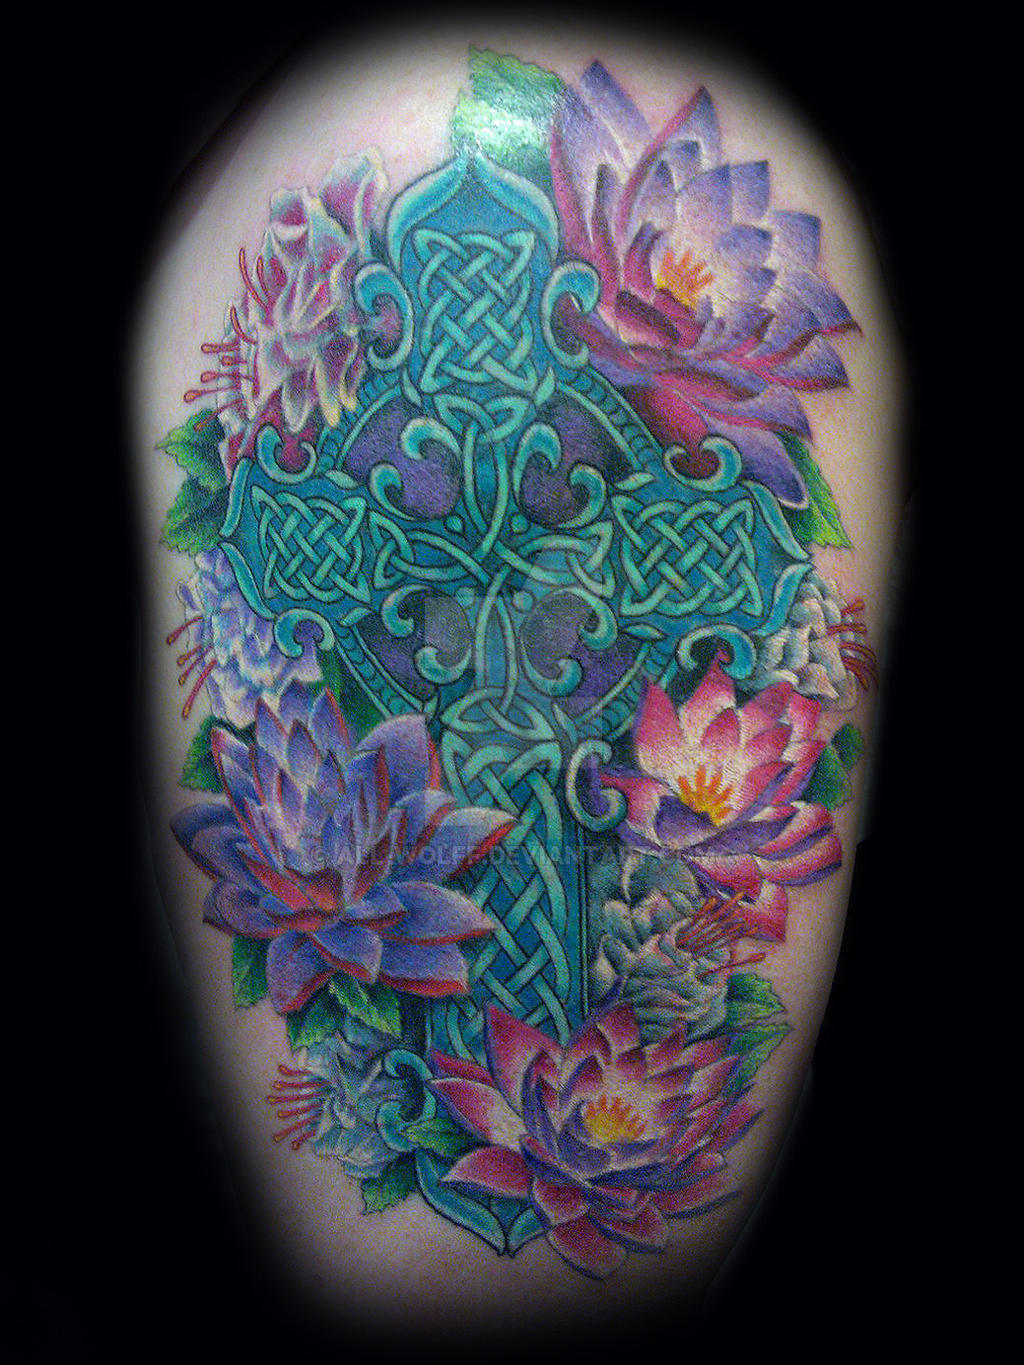 celtic cross tattoo with flowers by All-Wolff